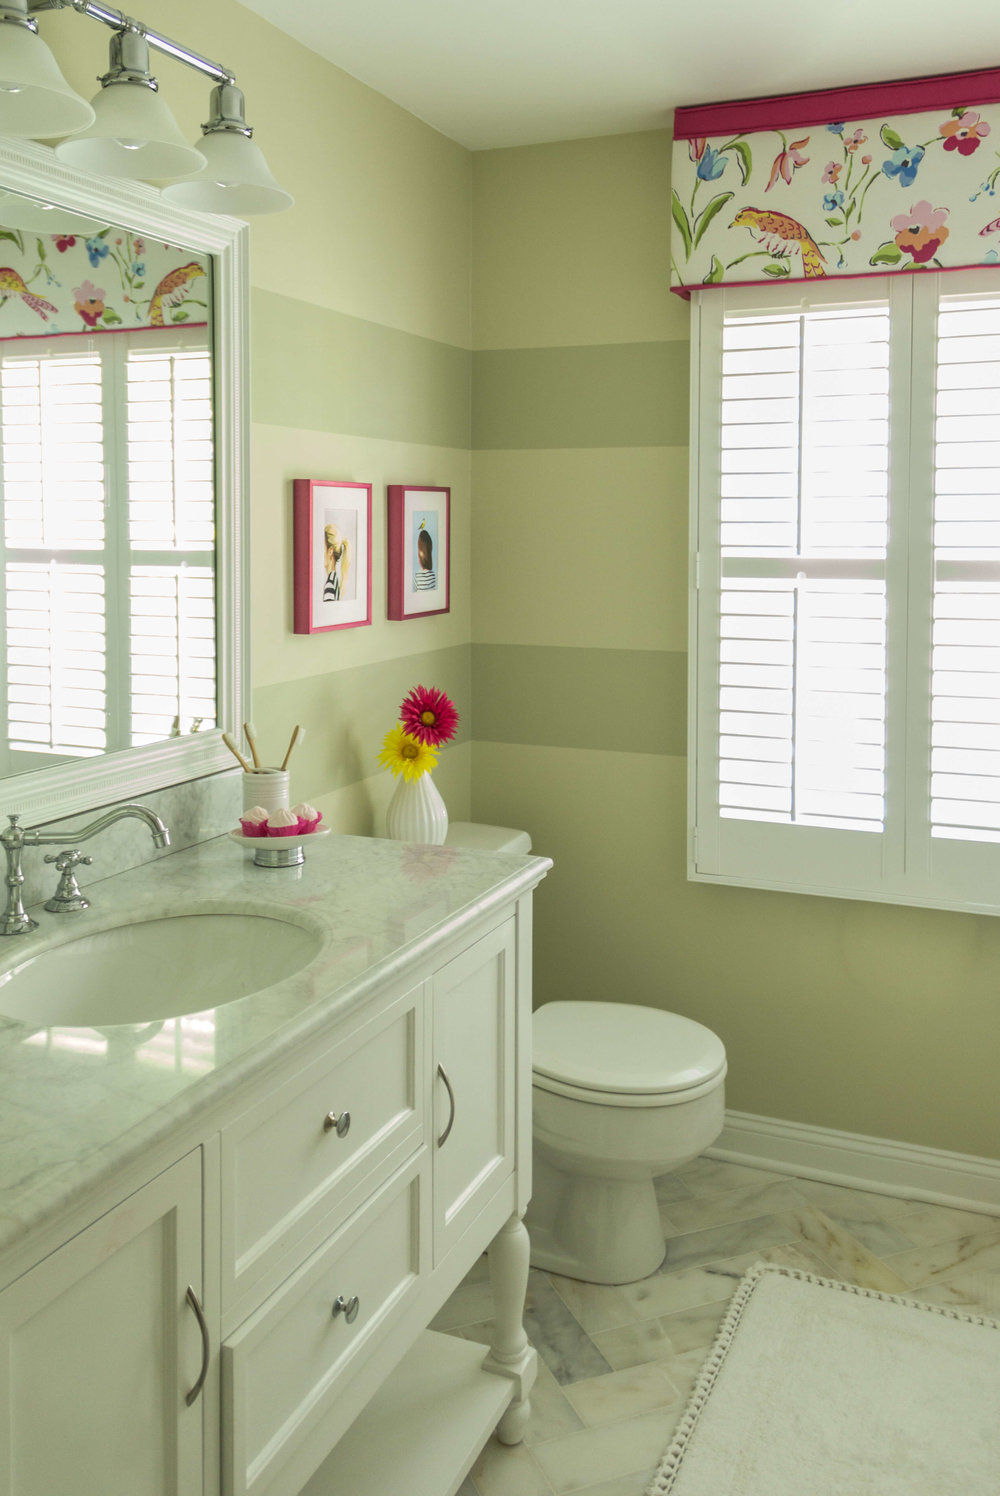 children-kids-bathroom-interior-design-remodel-renovate-virginia-8.jpg